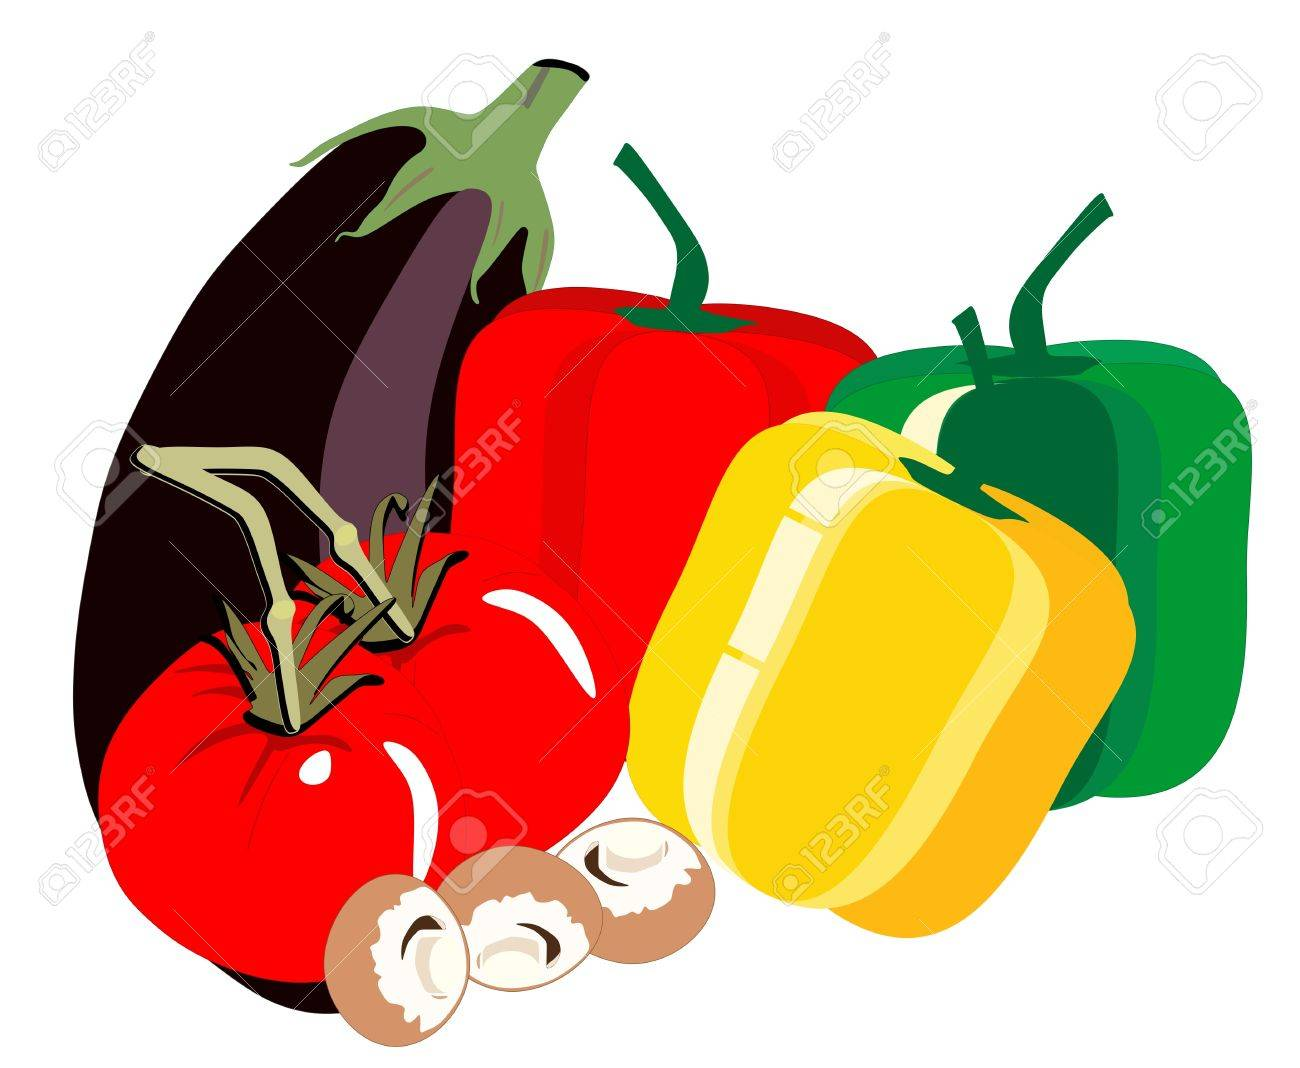 Delicious fresh vegatables, with egg plant, tomatoes, bell peppers of various colours and mushrooms, in a illustration Stock Vector - 12834158